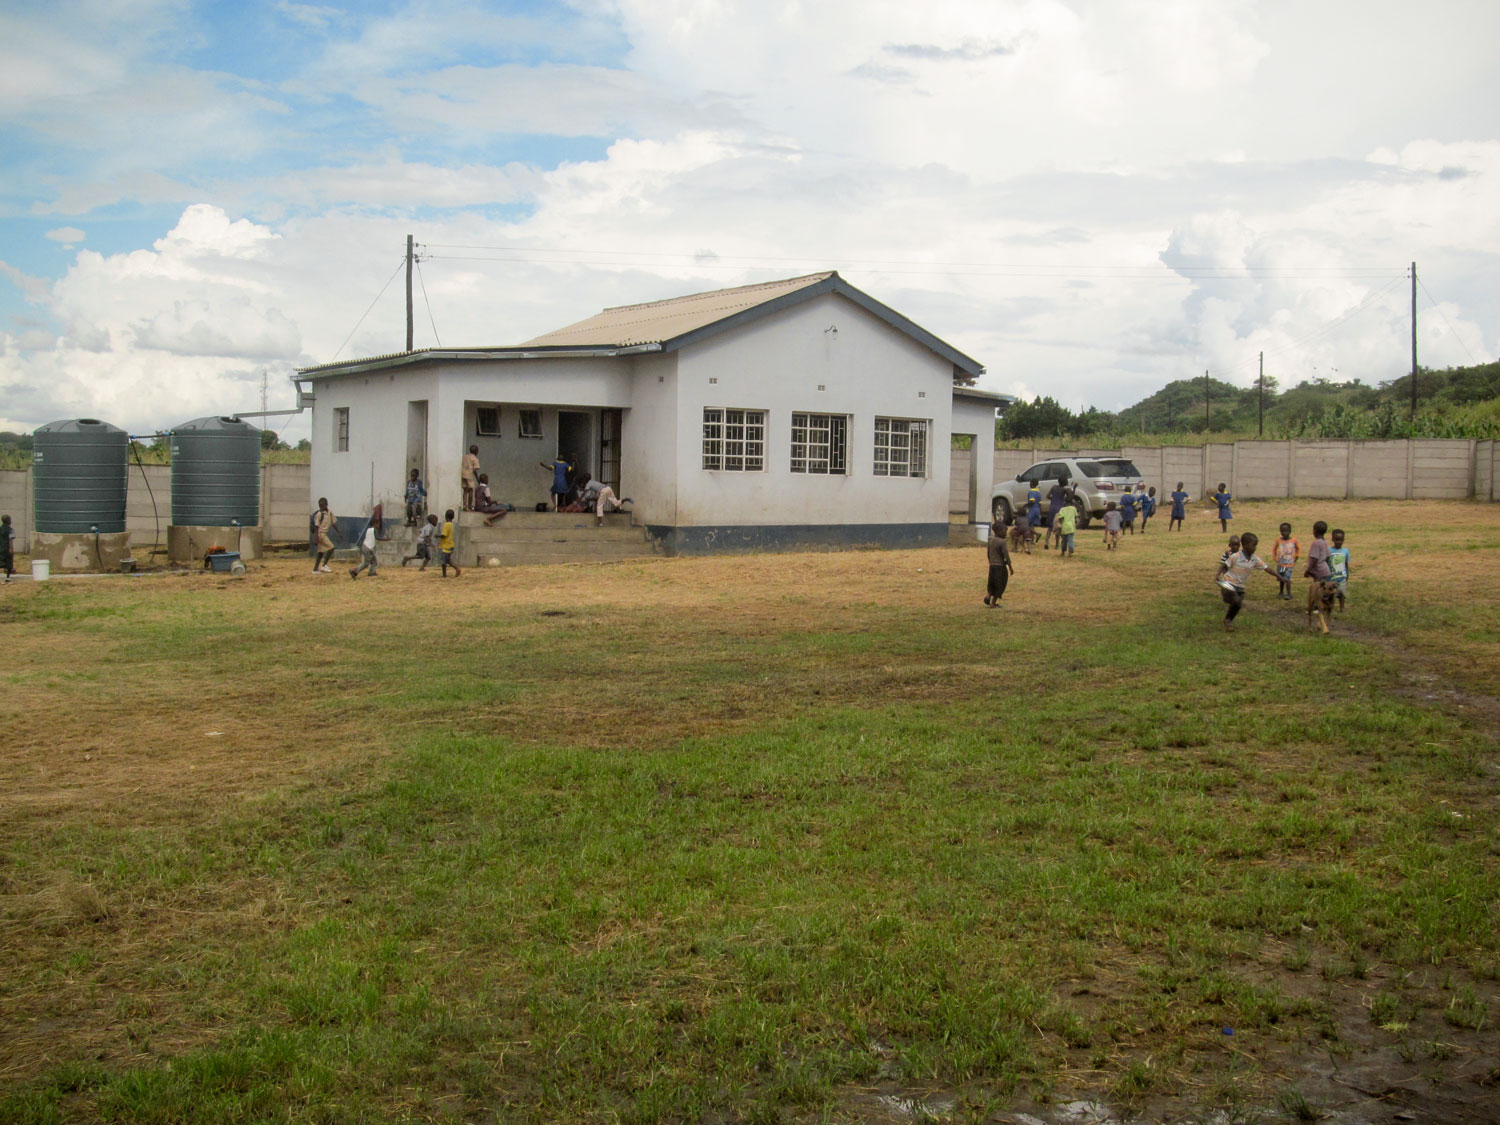 The Sakubva Life Centre is a place of safety, hope, love and play for 150 of the most vulnerable children in this community.